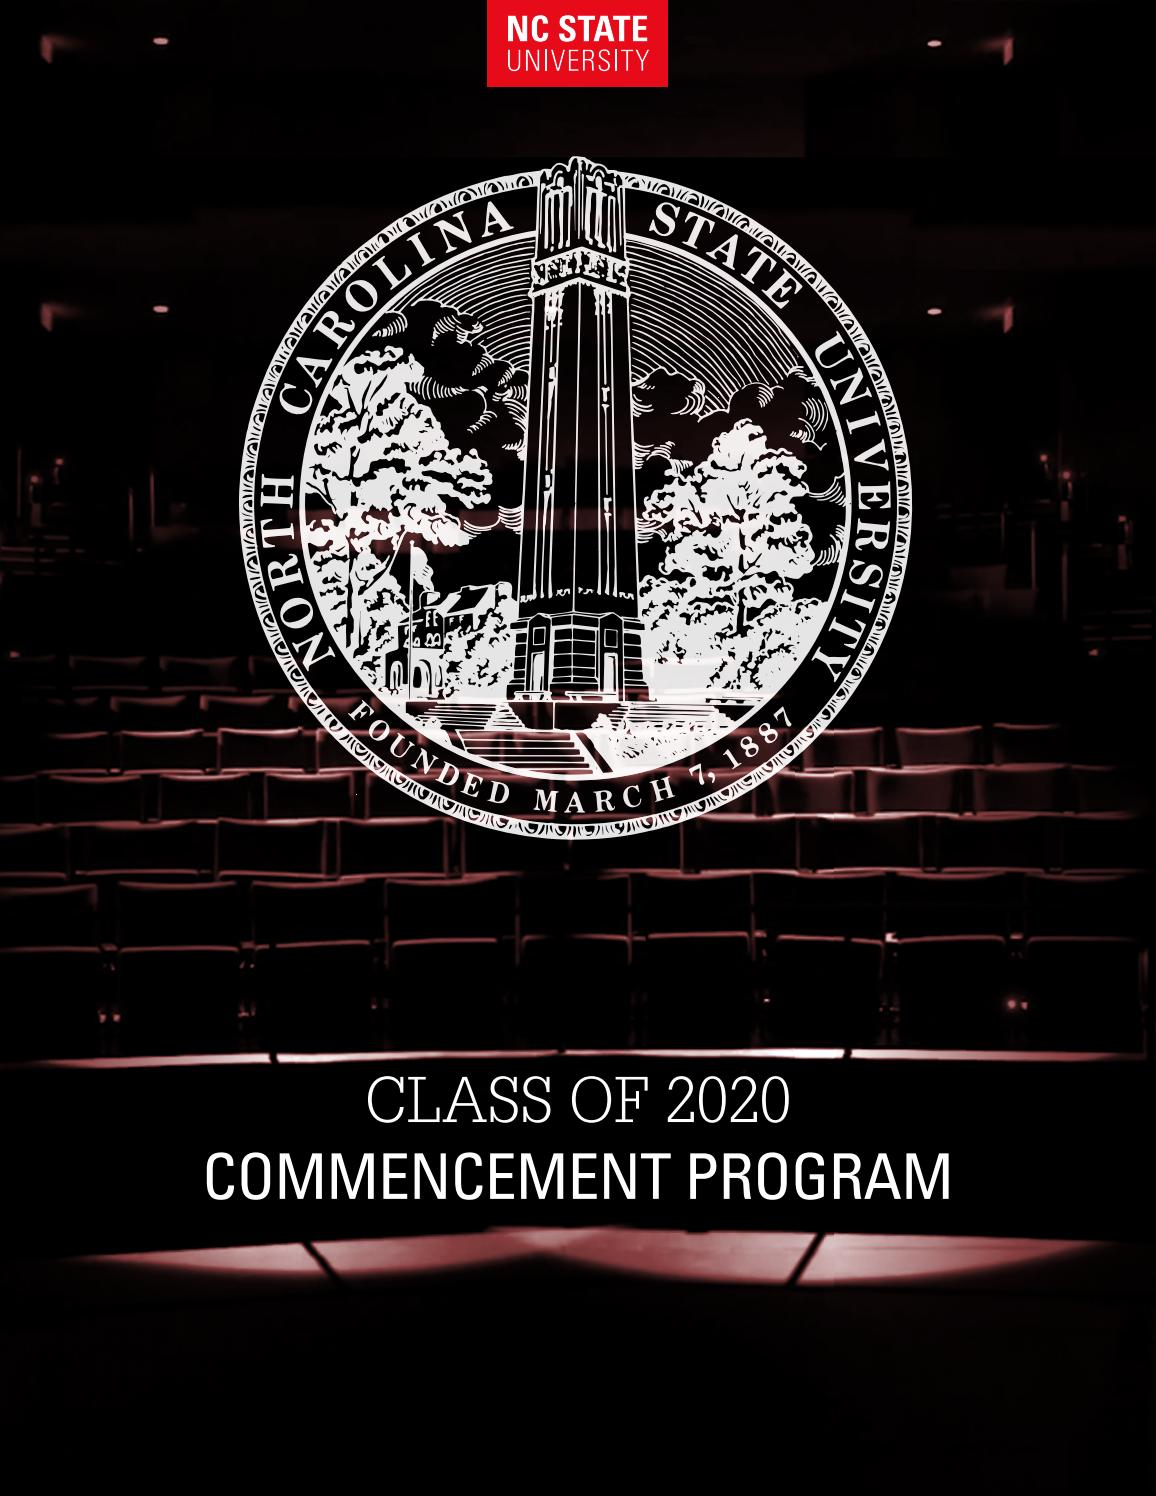 Nc State University 2020 Commencement Program By Nc State Enrollment Management And Services Issuu